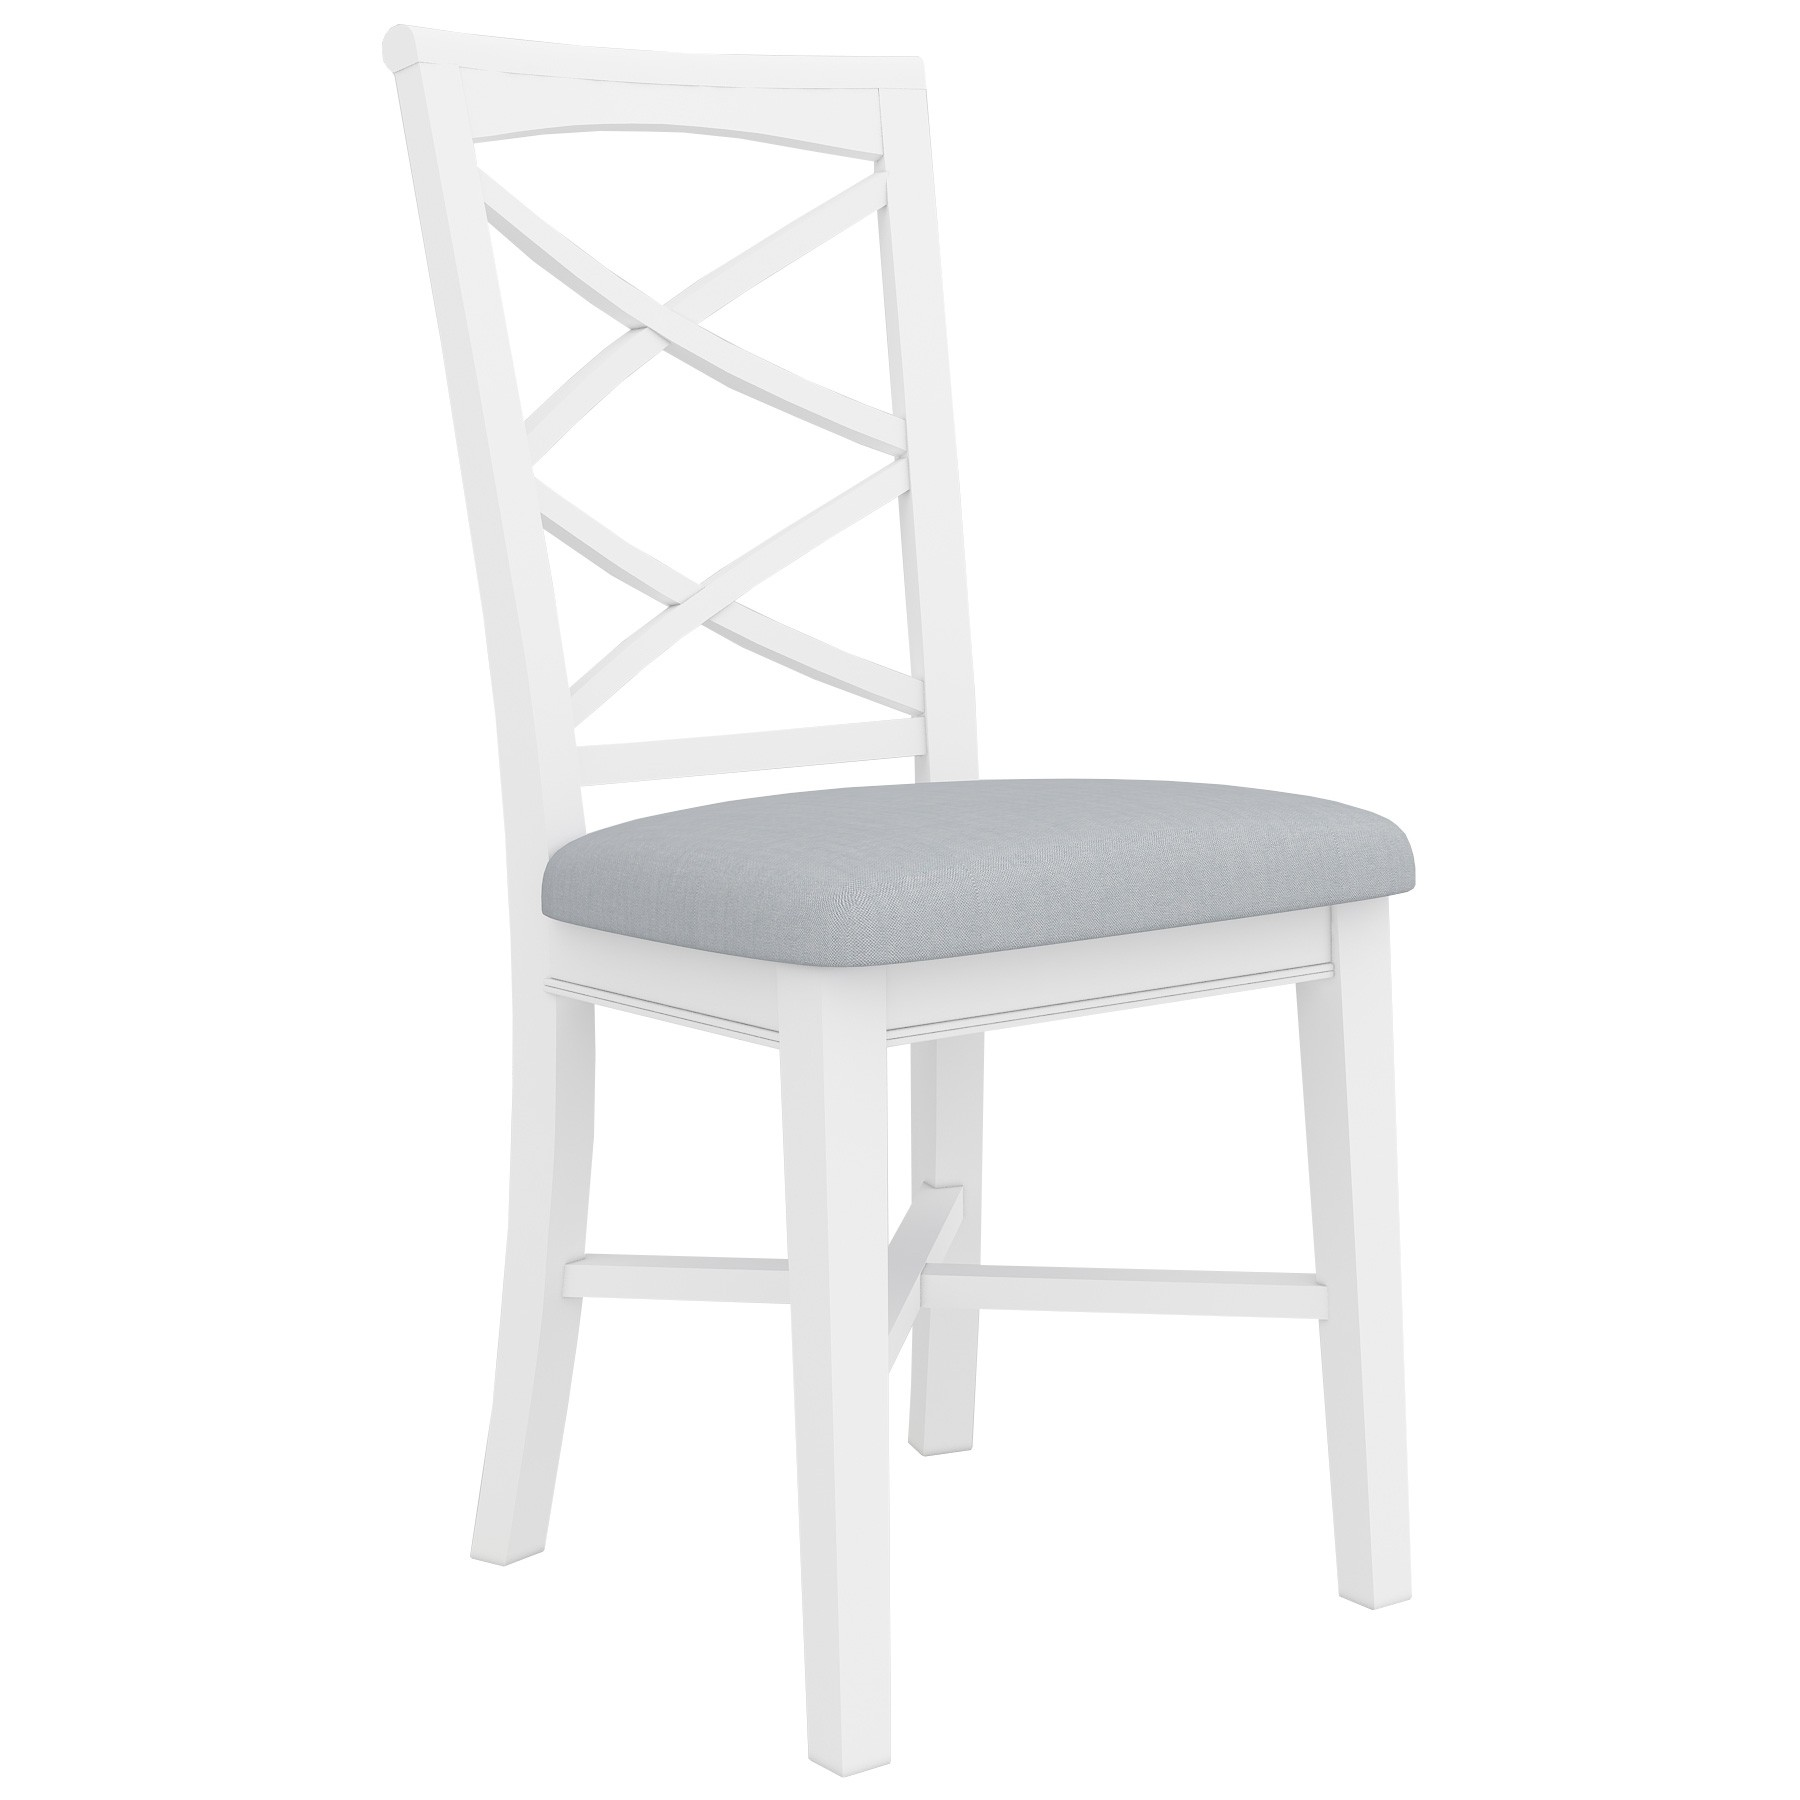 Hastings Wooden Dining Chair